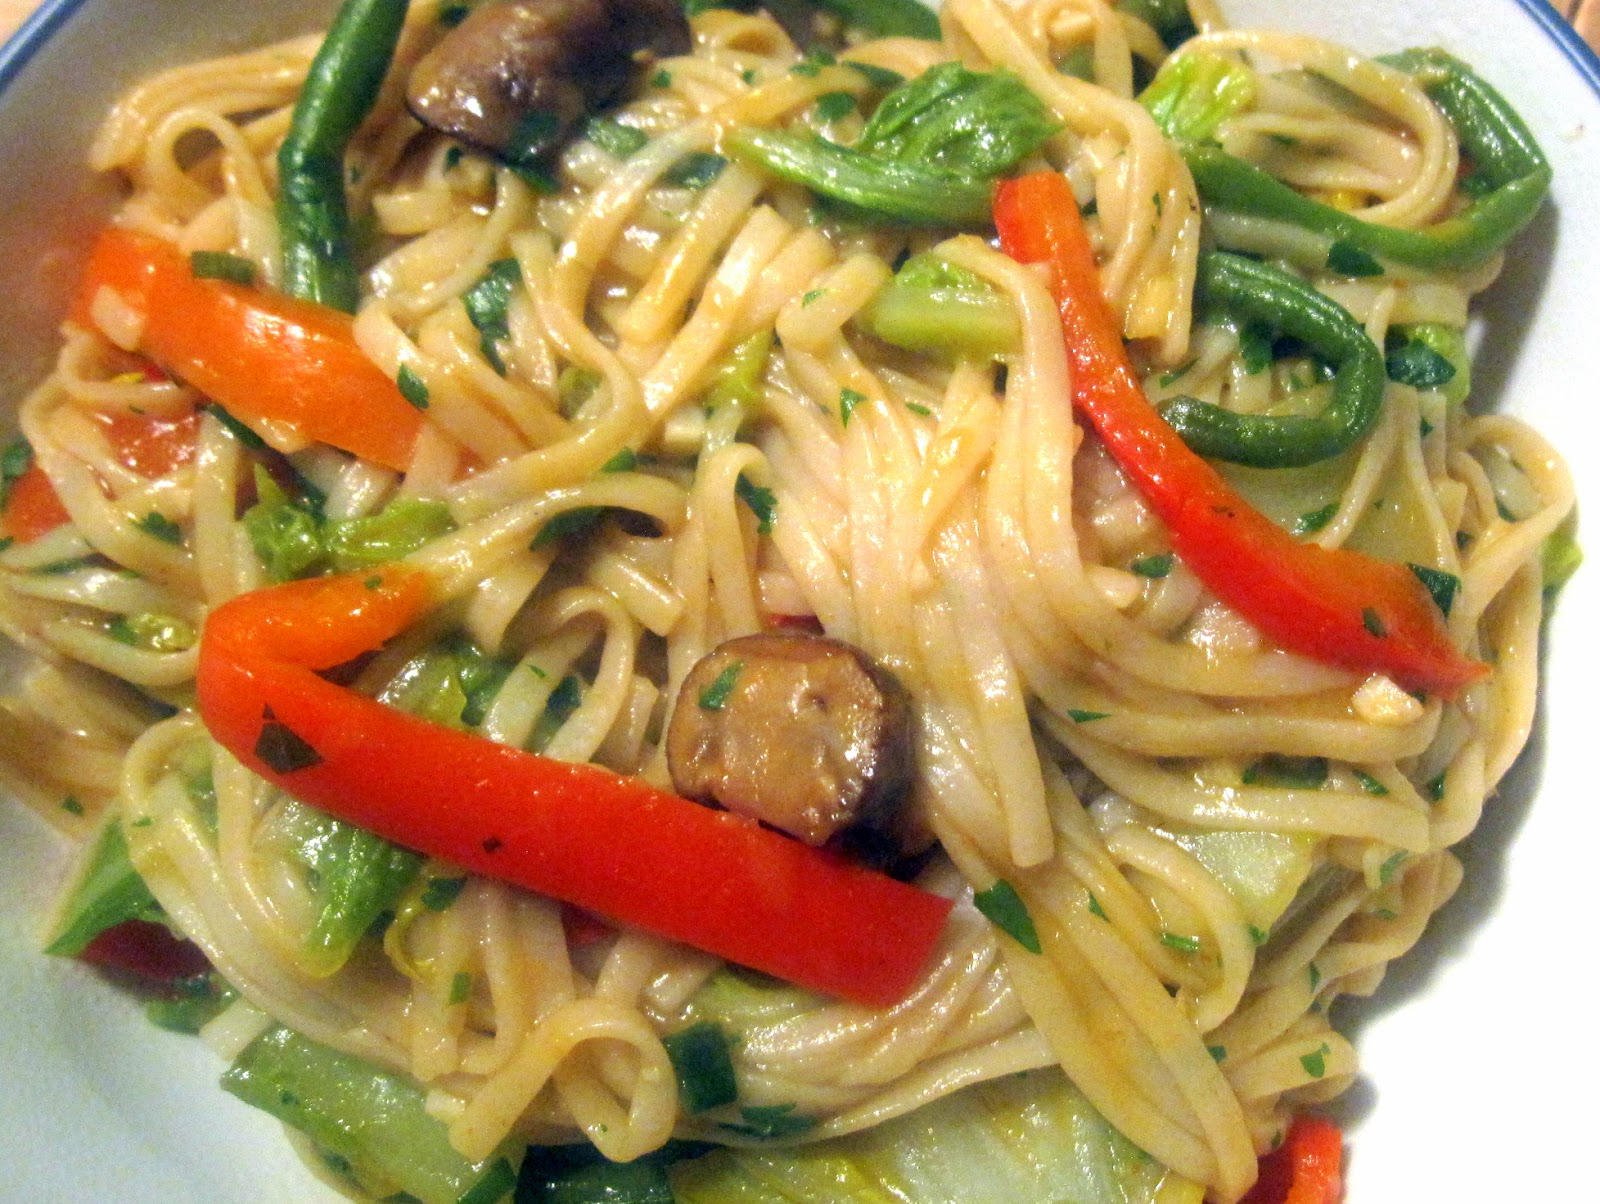 Food for the Week: Vegetable Lo Mein